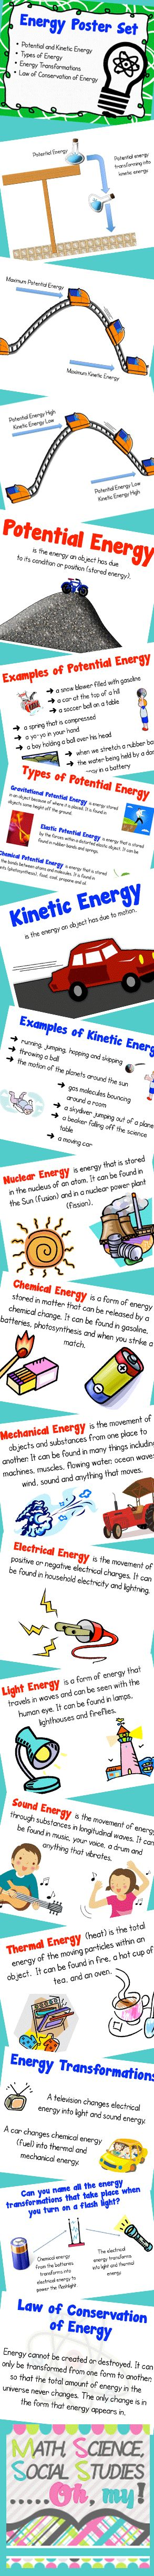 Best 43 Stem: Potential And Kinetic Energy Images On Pinterest  Education